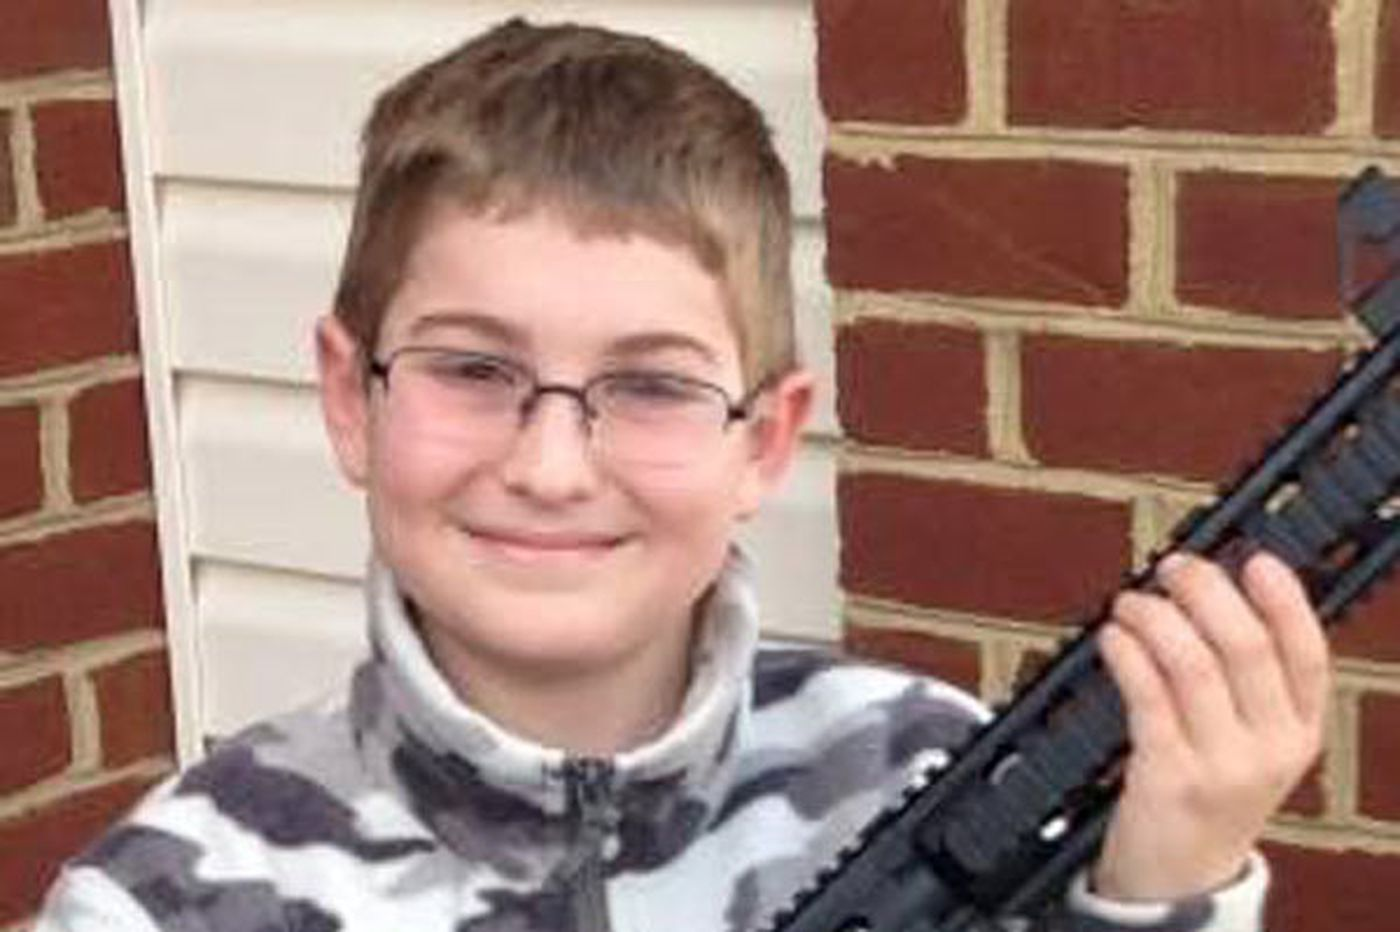 Election enraged man who posted Facebook pic of son with rifle